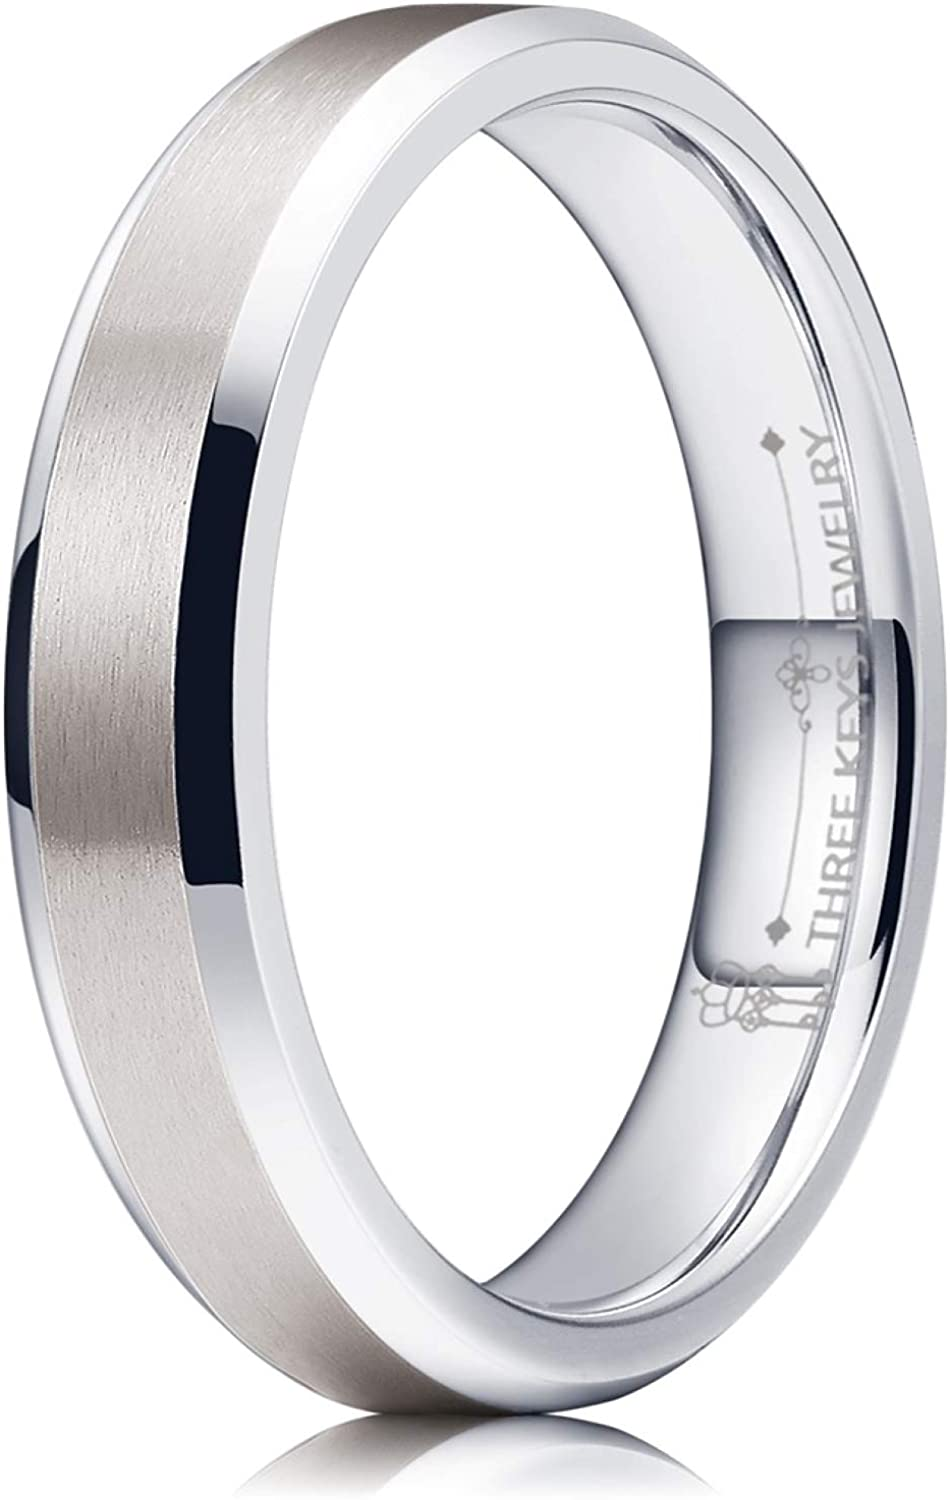 THREE KEYS JEWELRY 4mm 6mm 8mm Tungsten Titanium Wedding Rings Mens Womens Silver Engagement Bands